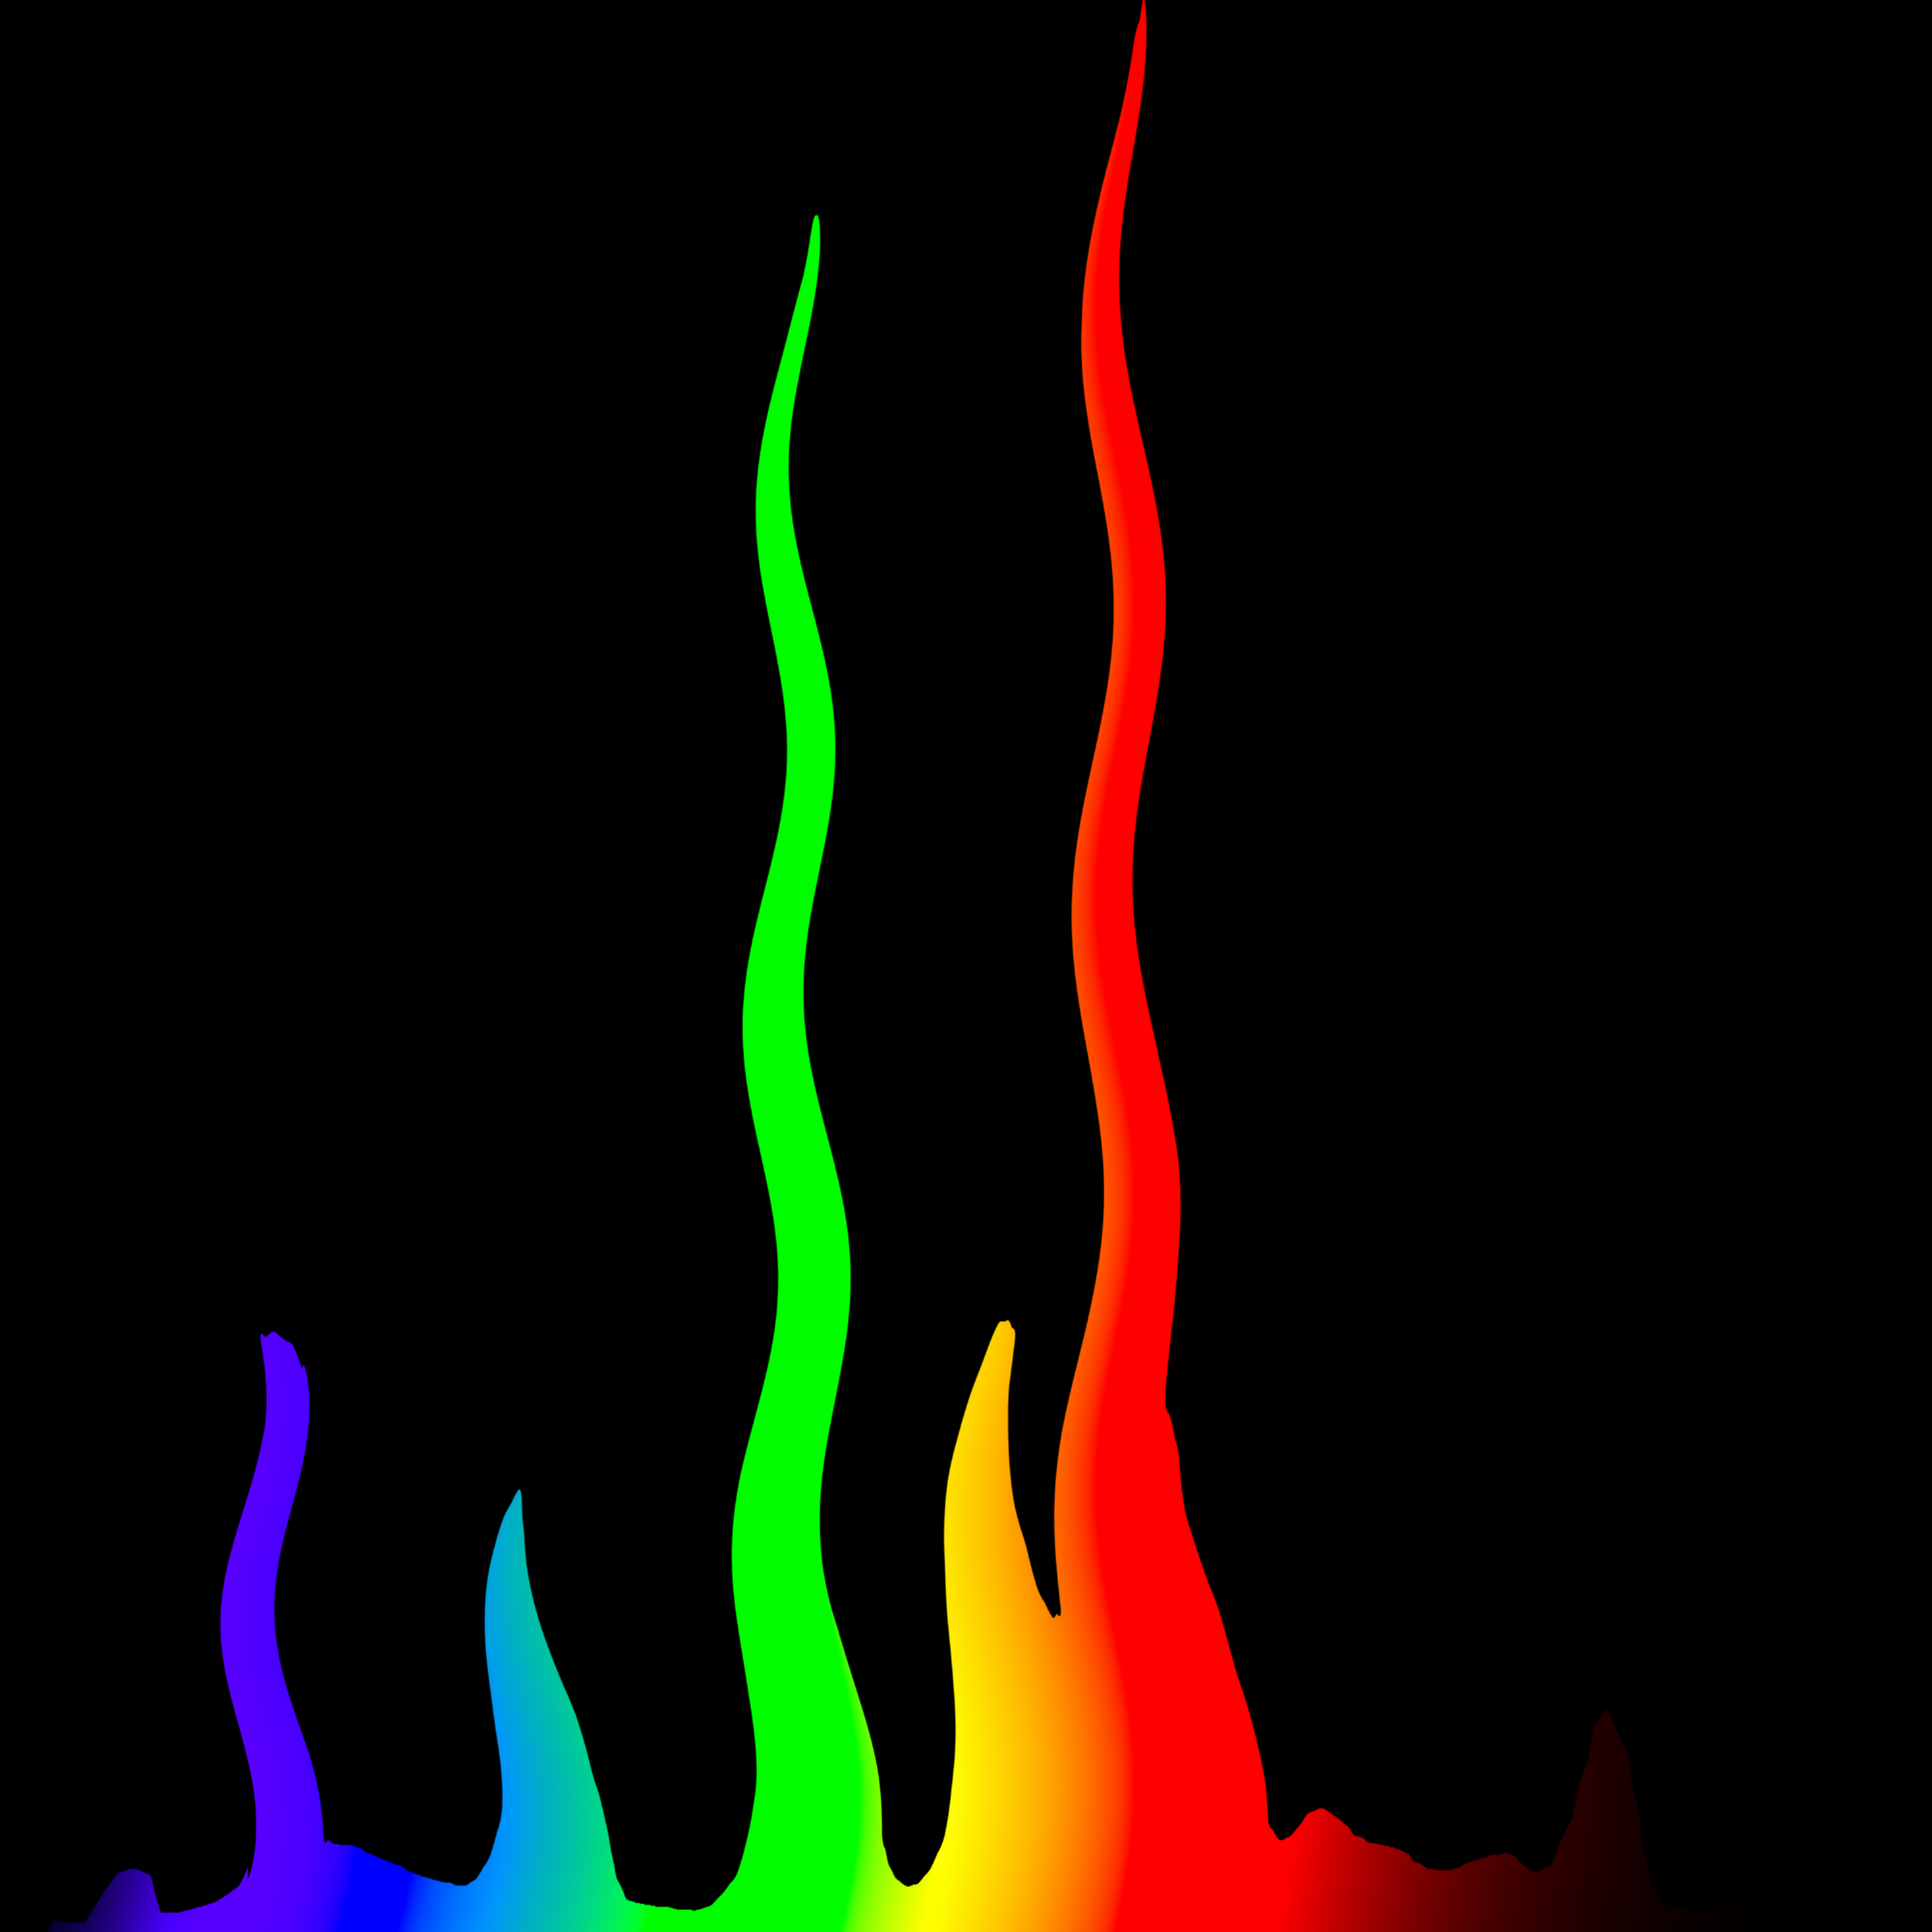 FluorescentLightSpectrum.2000.png